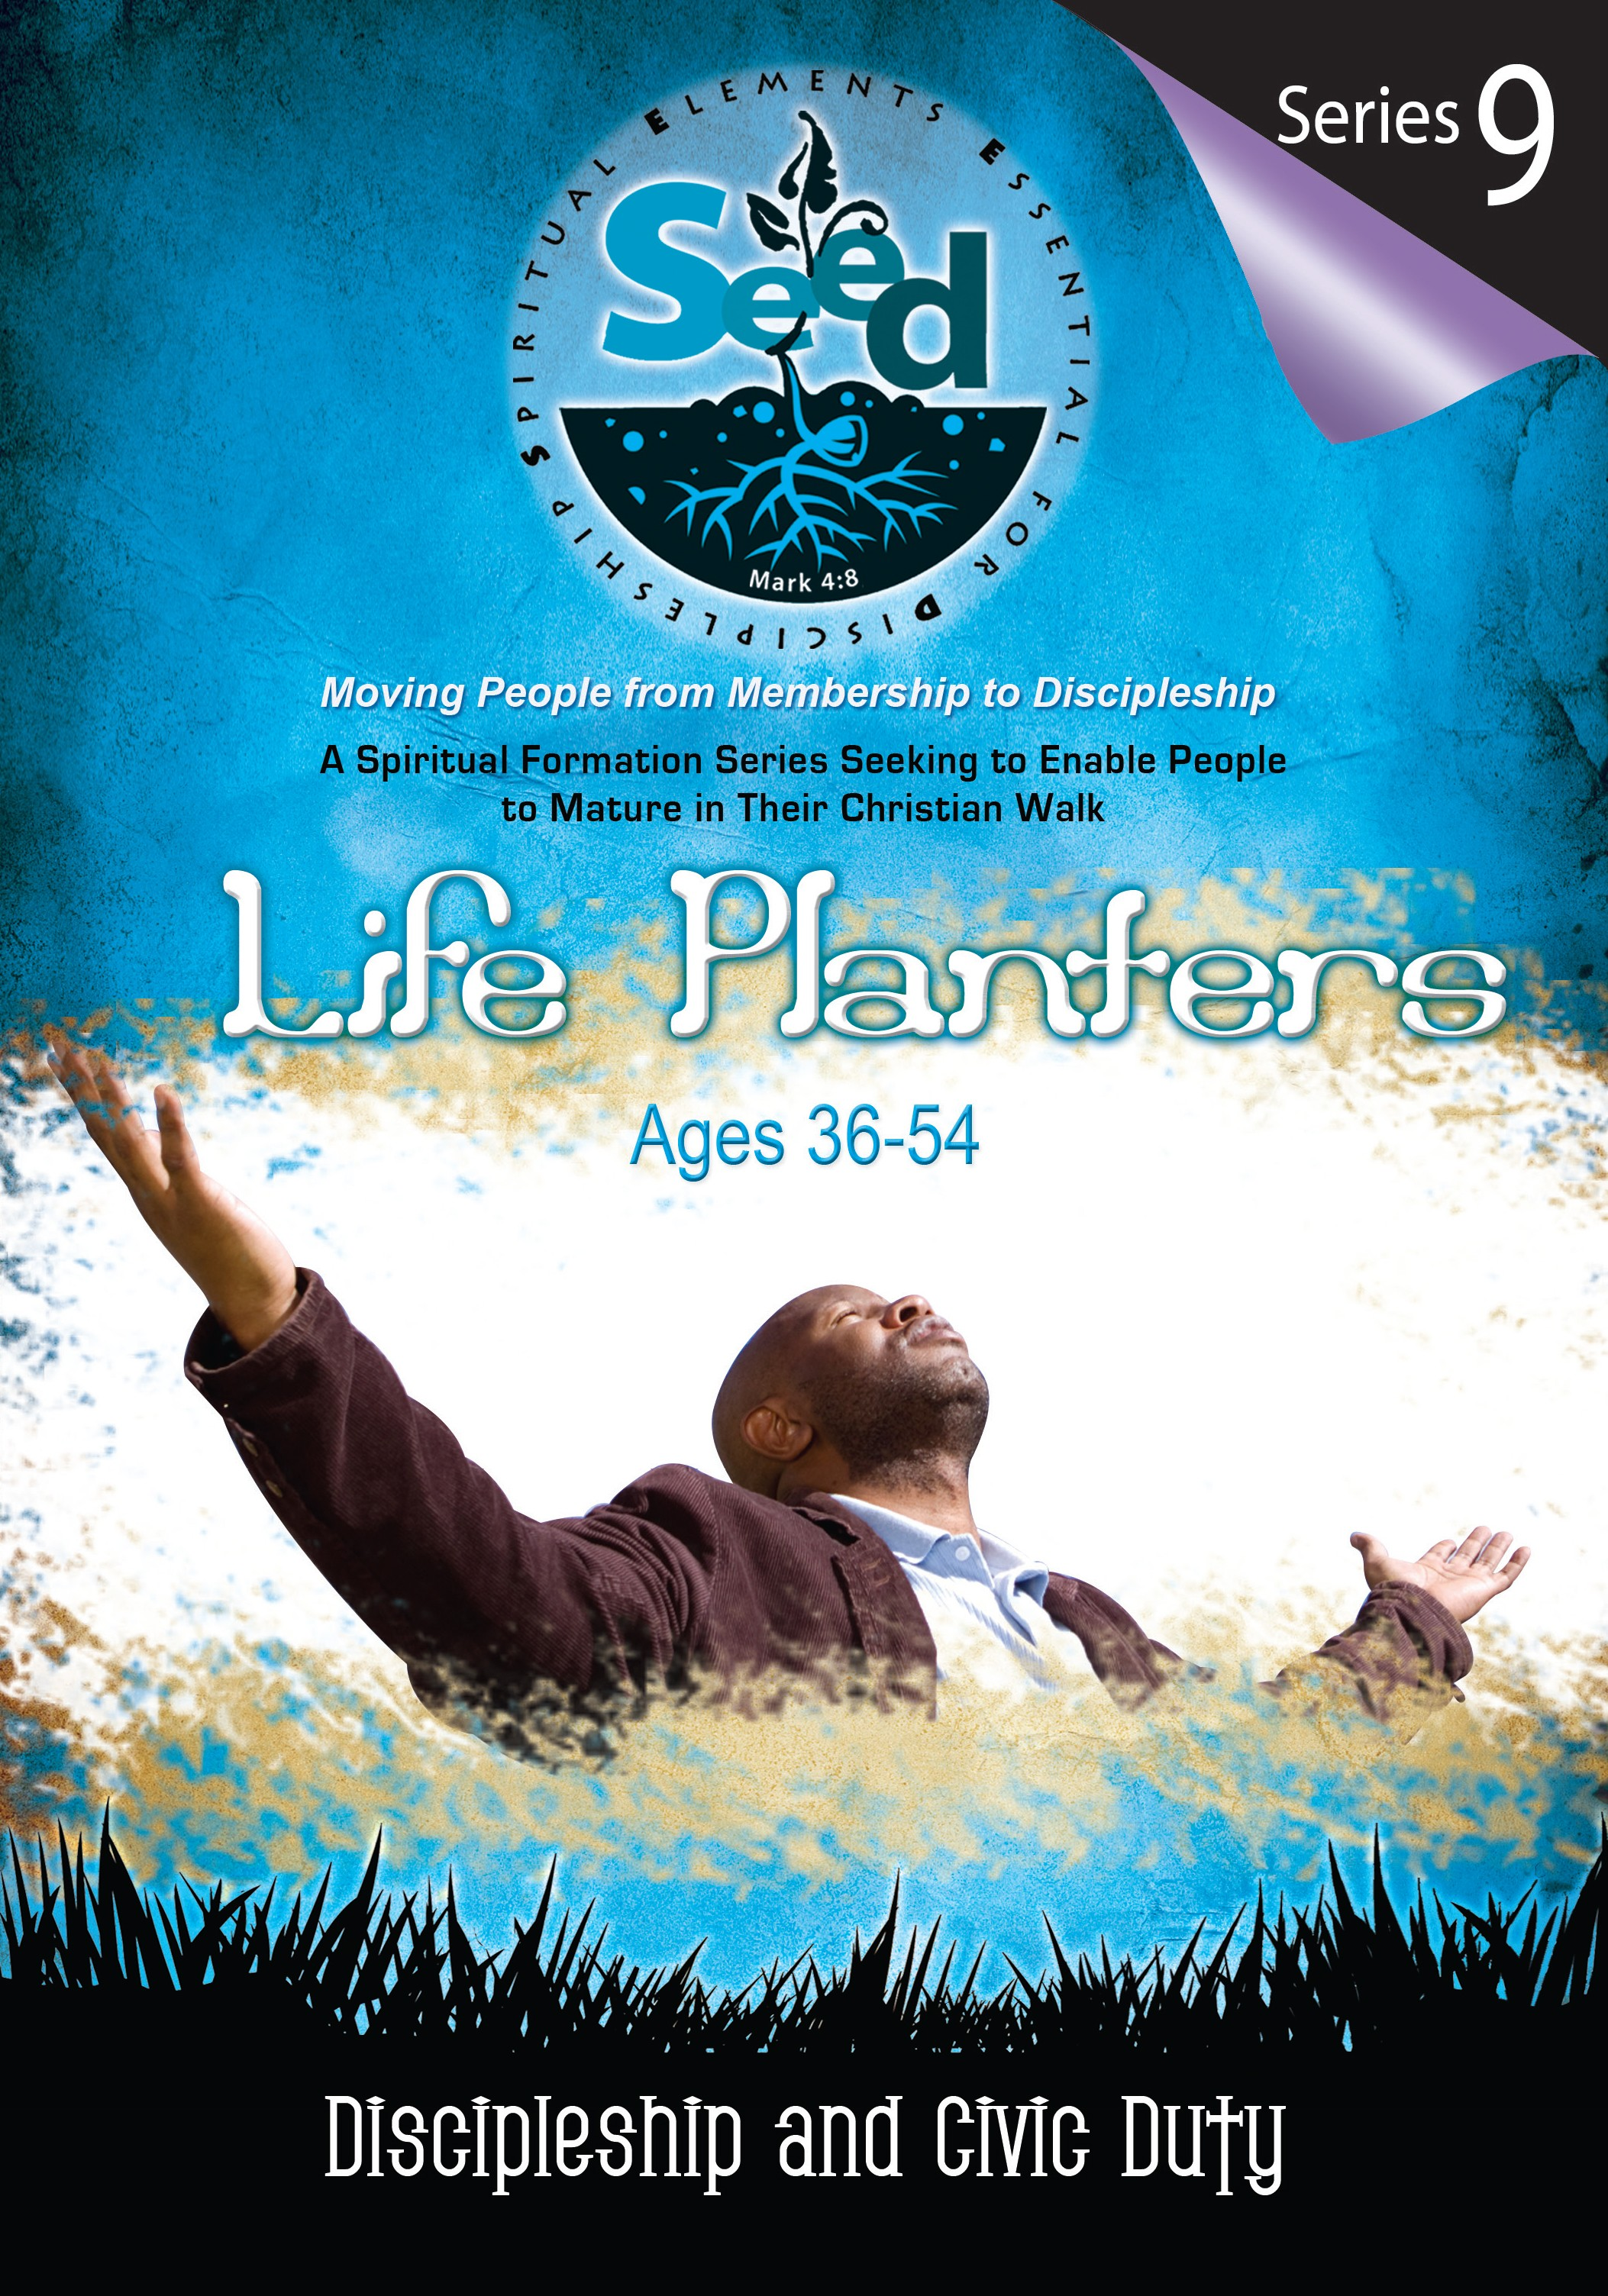 SEED Life Planters (Ages 36-54): Series 9: Discipleship and Civic Duty